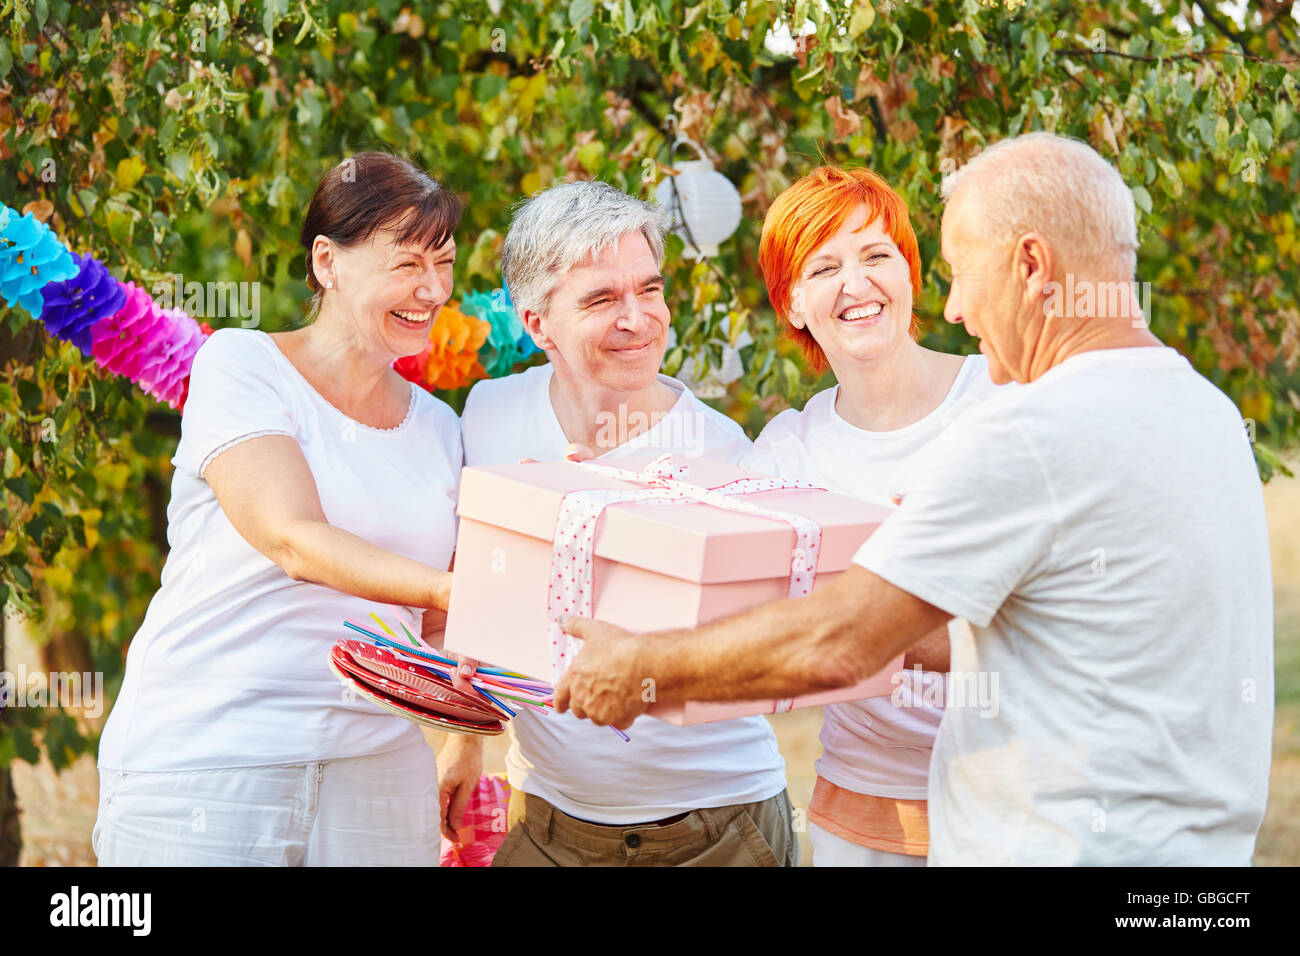 Group of happy seniors with birthday present in a garden in summer - Stock Image